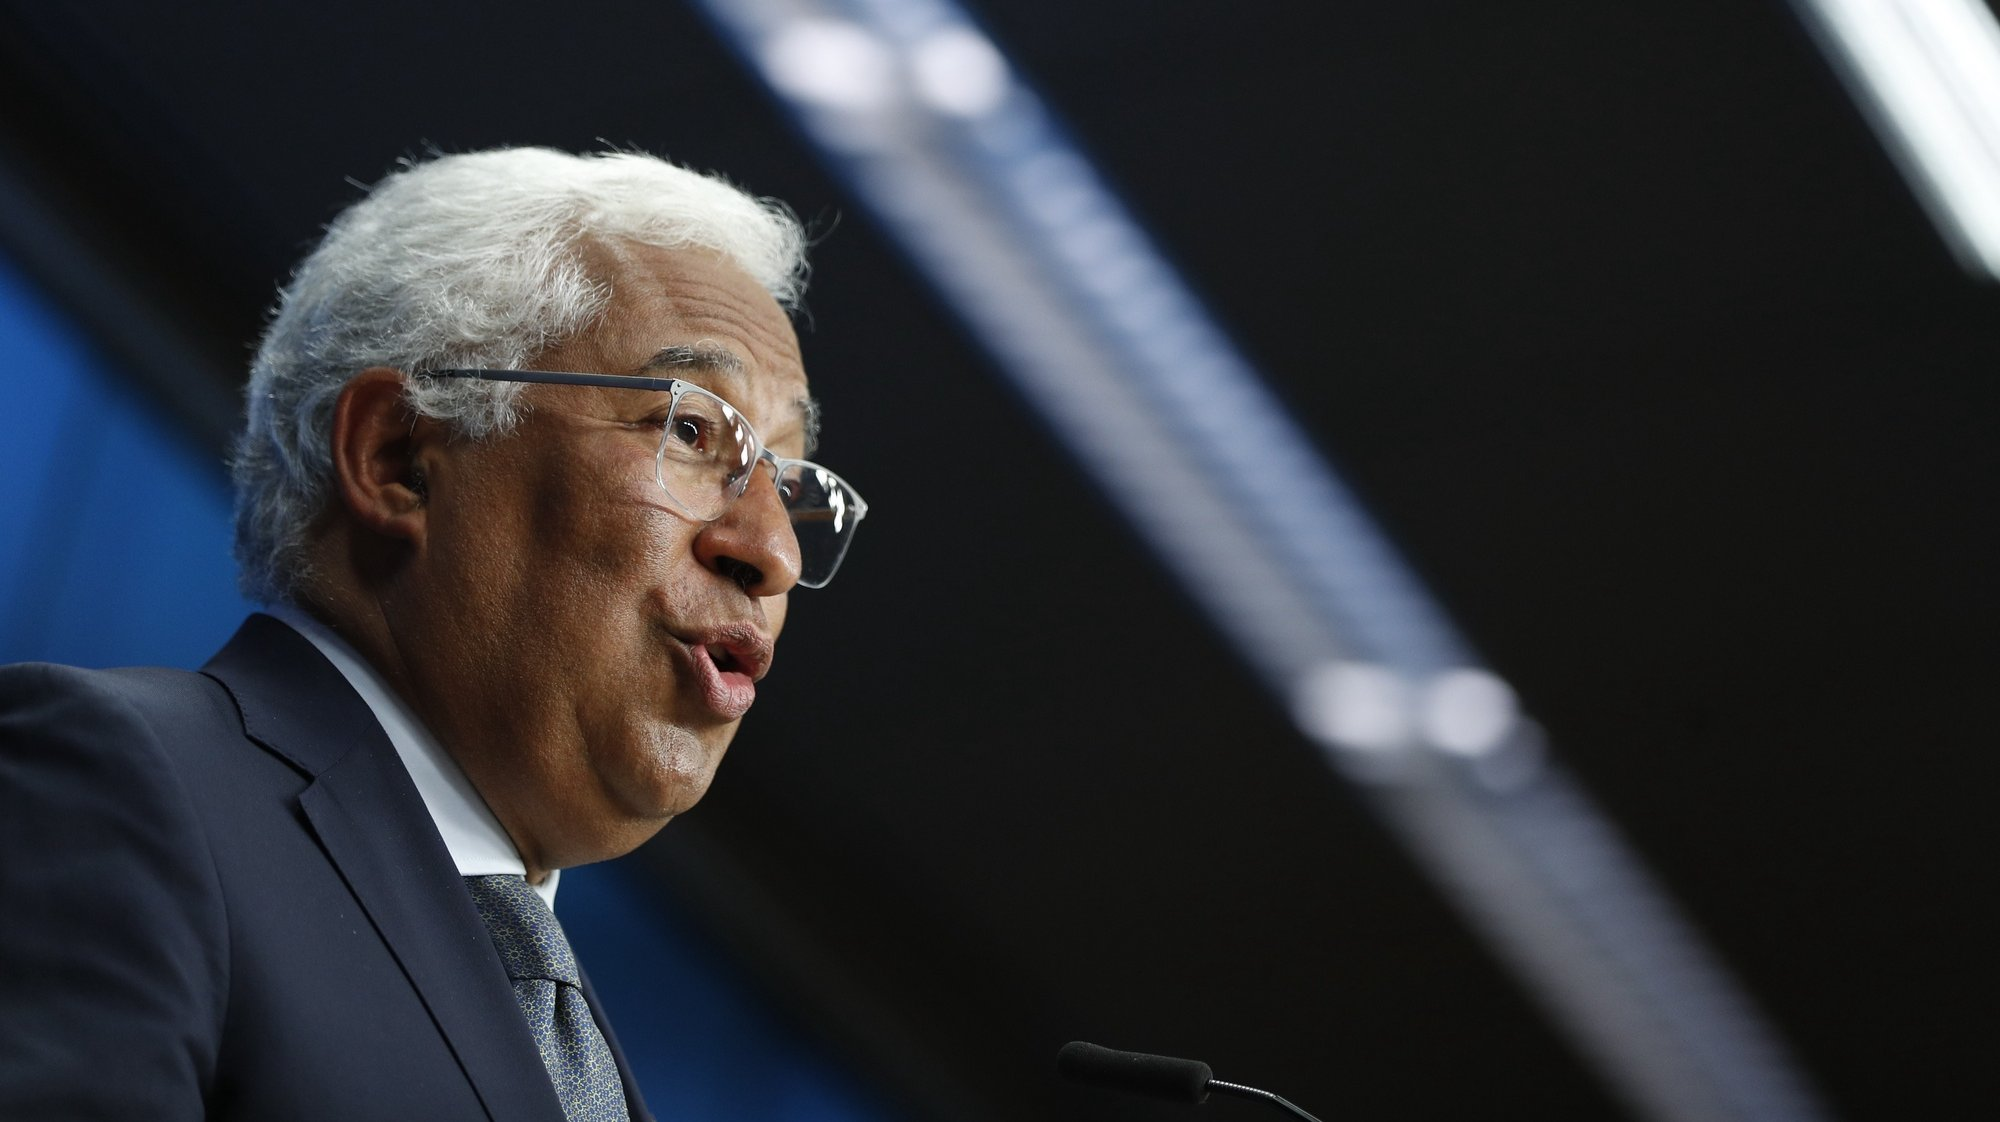 epa09300916 Portugal's Prime Minister Antonio Costa speaks at a news conference after European Union leaders meeting in Brussels, Belgium, 25 June 2021.  EPA/JOHANNA GERON / POOL